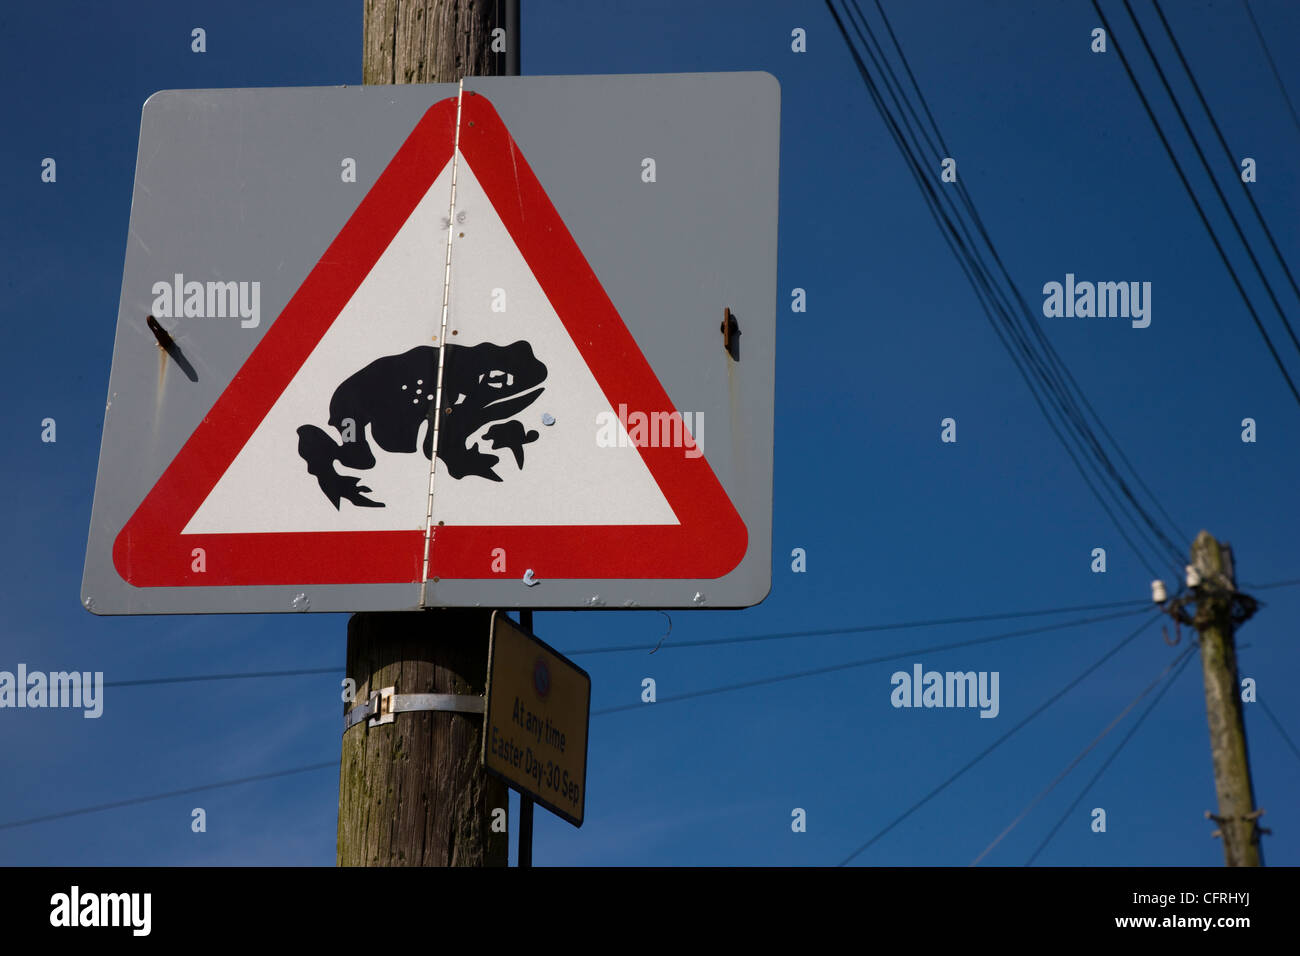 Red triangle warning road sign warning of toads or frogs crossing the road - Stock Image